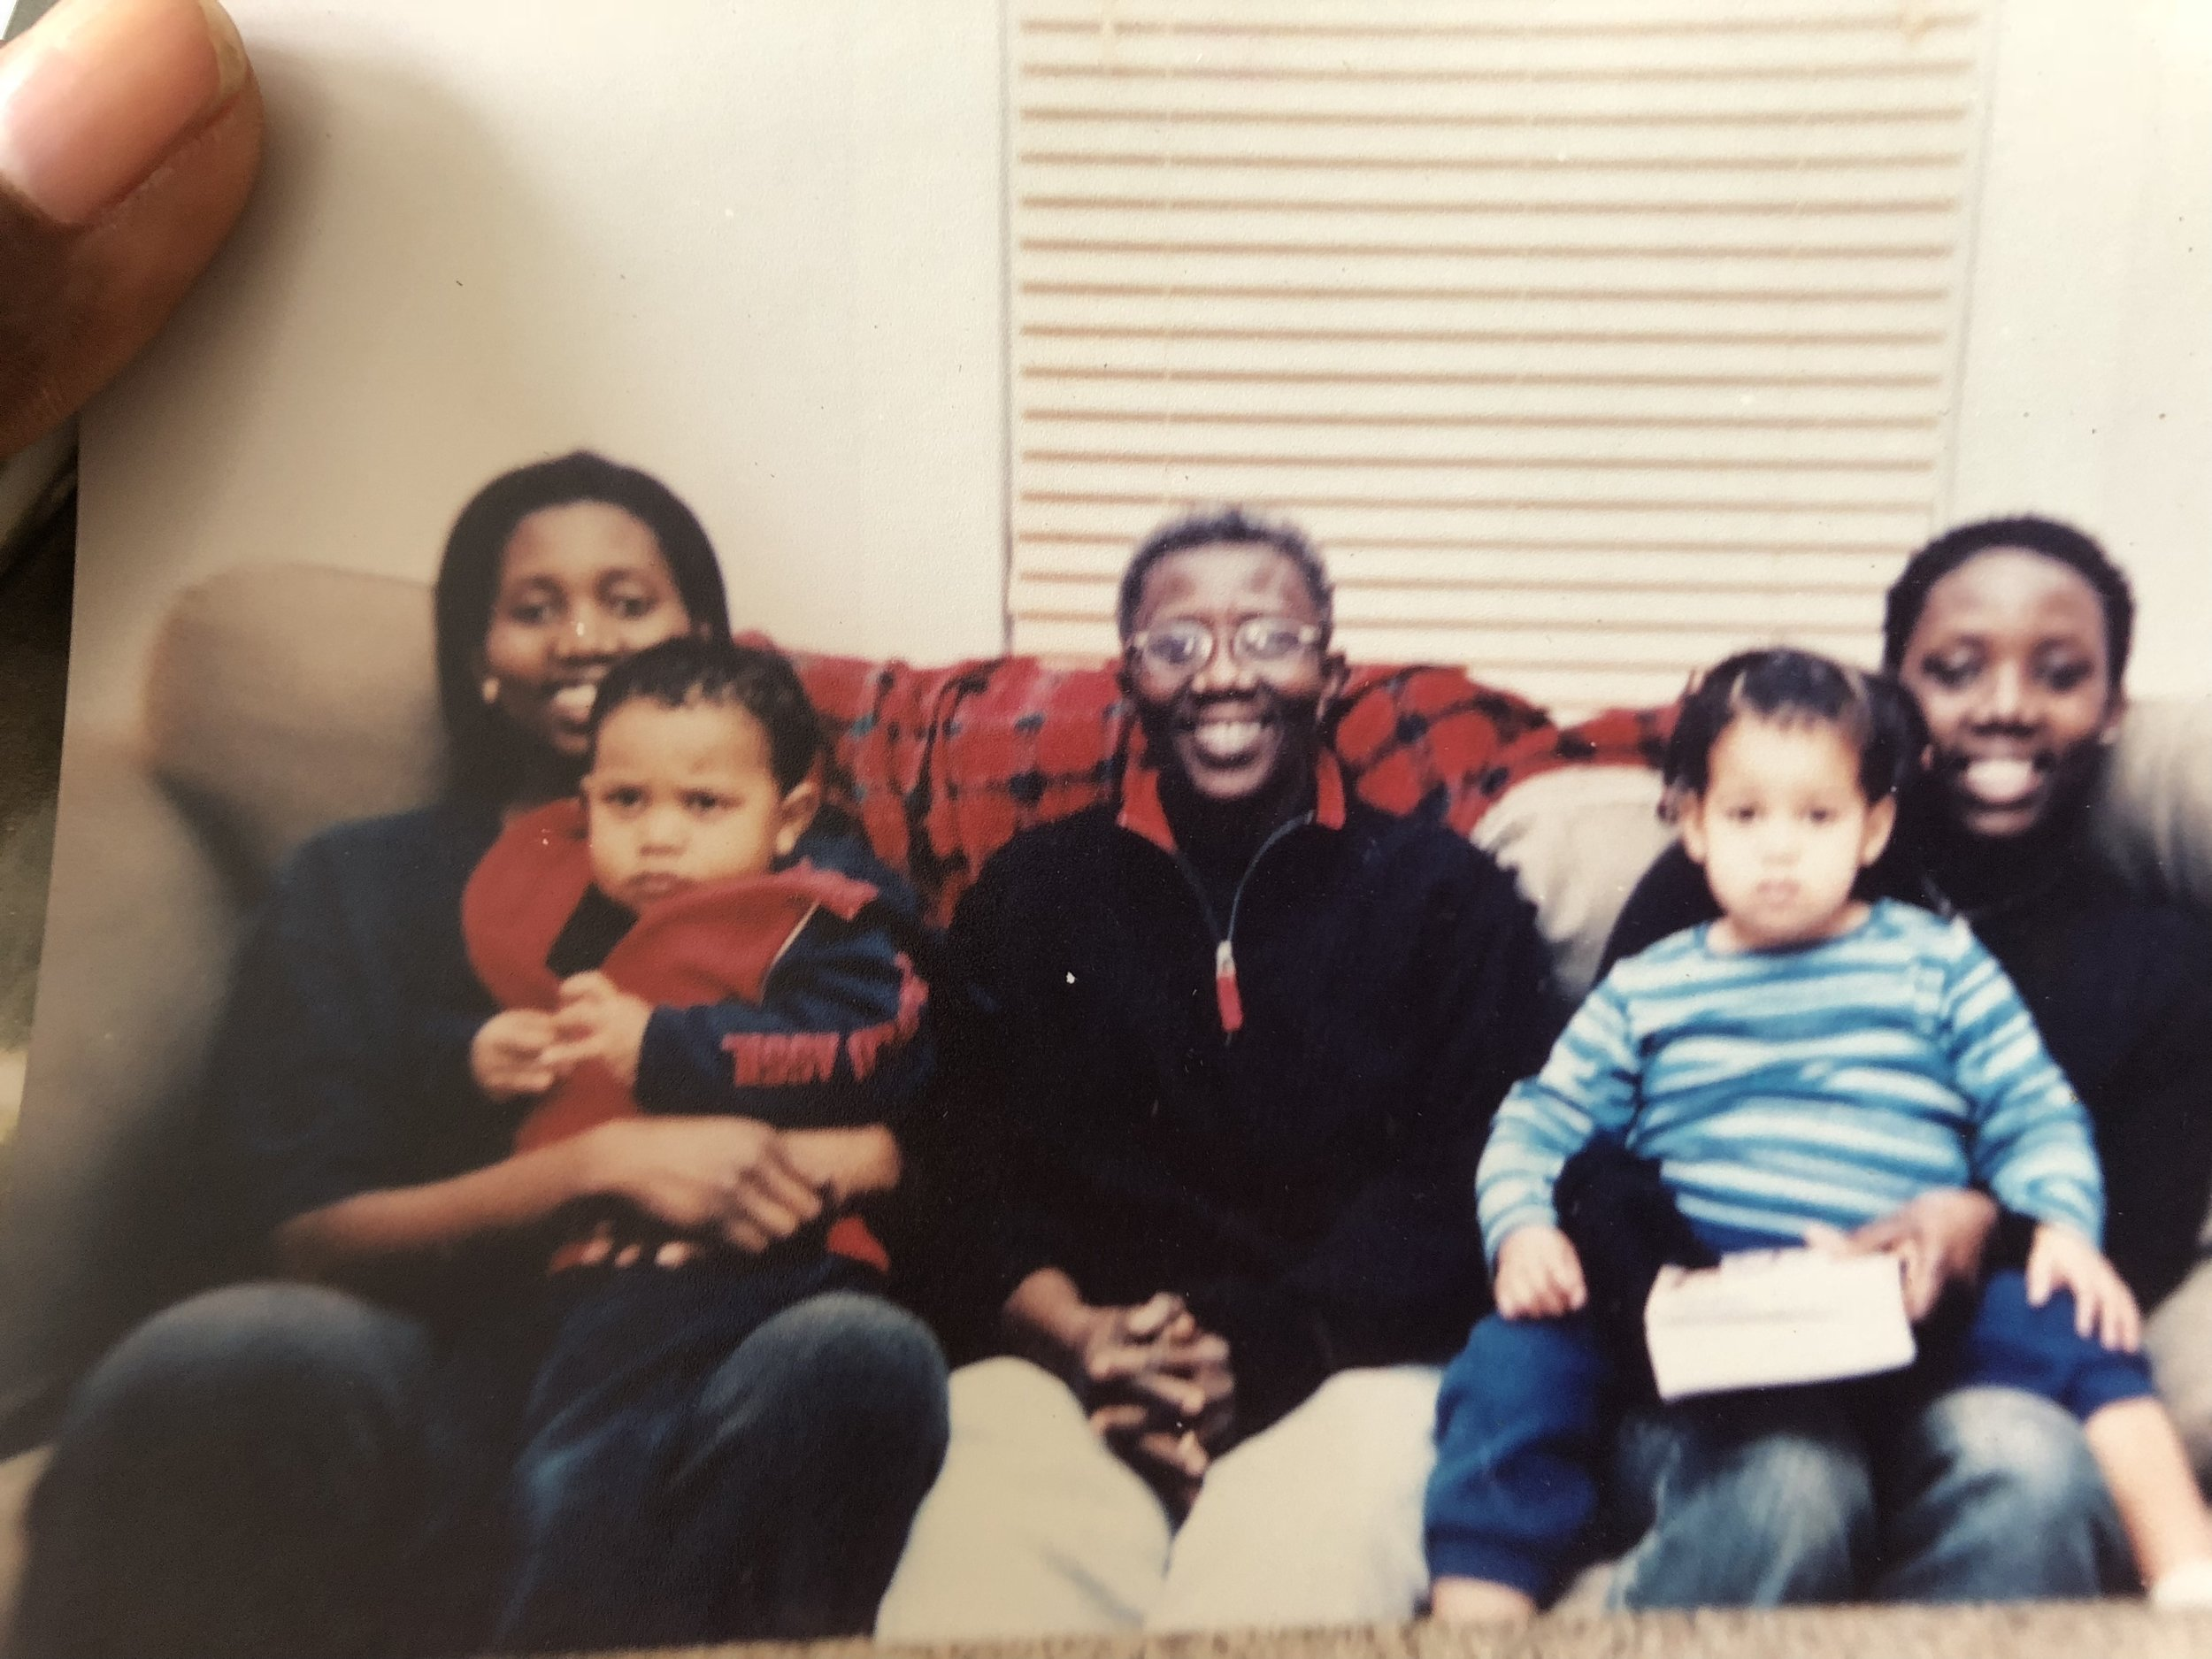 From left to right - me, my nephew, my mother, my daughter and my sister.